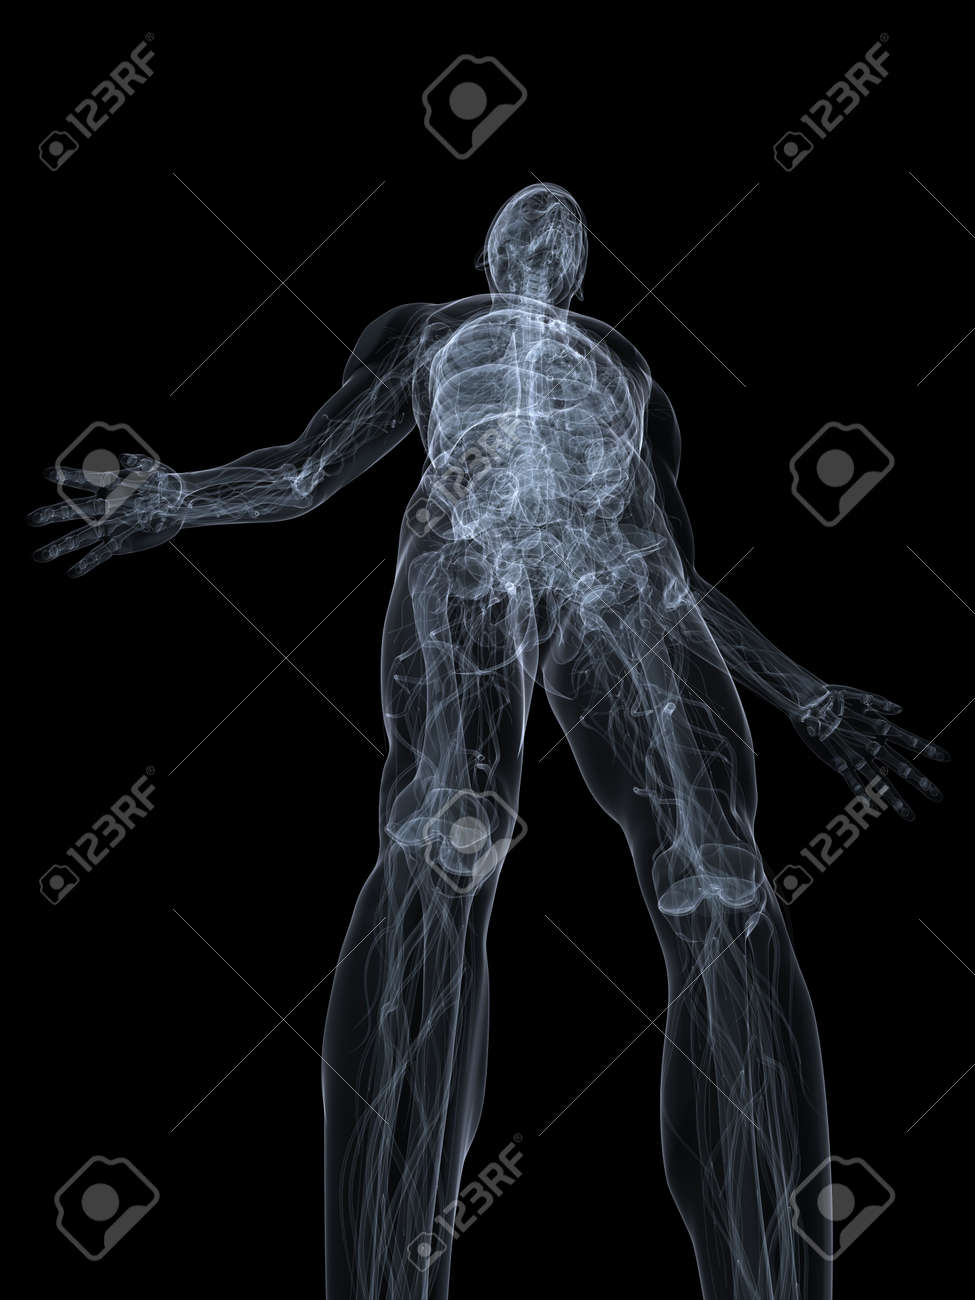 x-ray anatomy Stock Photo - 4696191